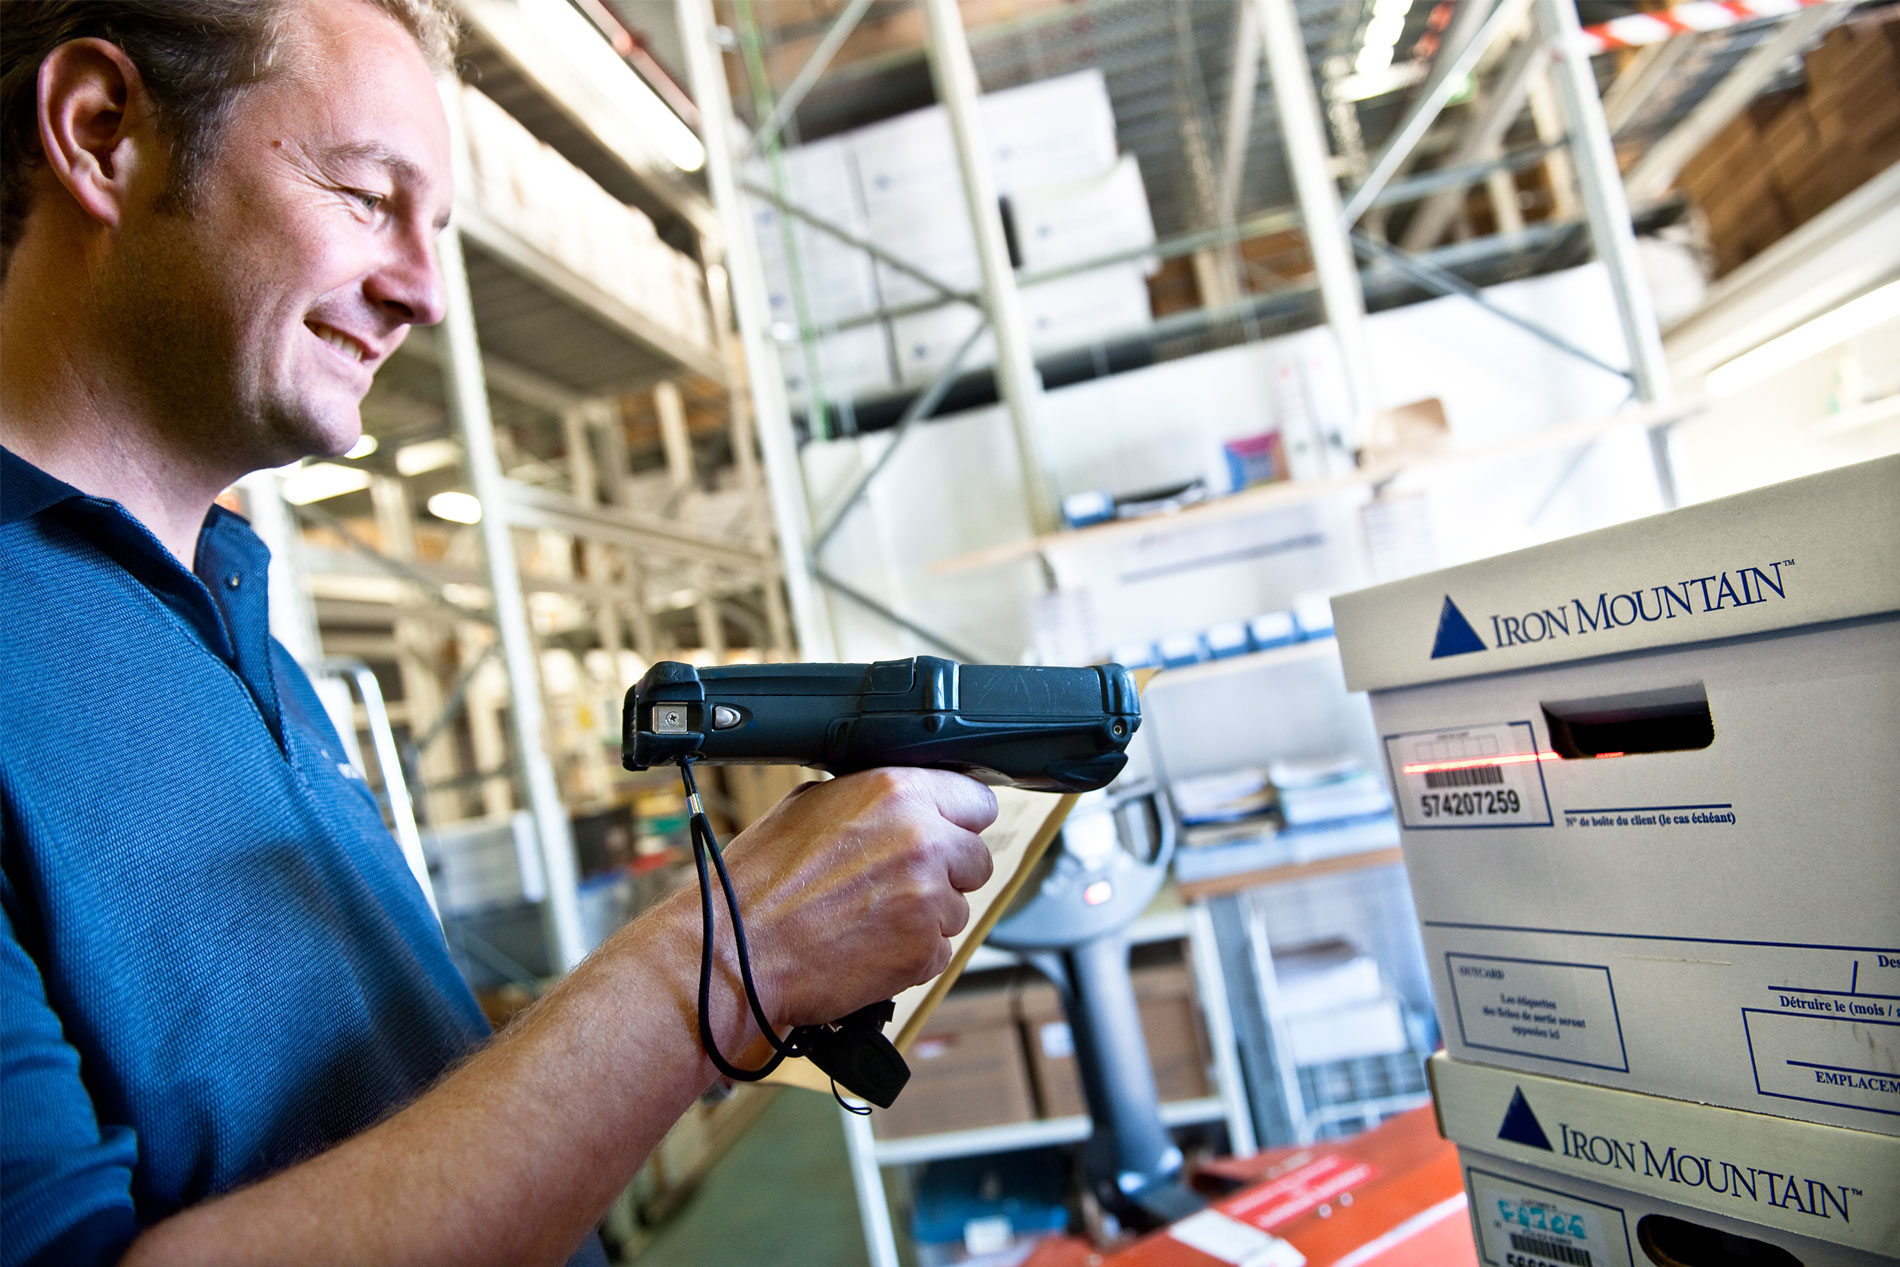 Iron Mountain Employee scanning boxes in storage facility